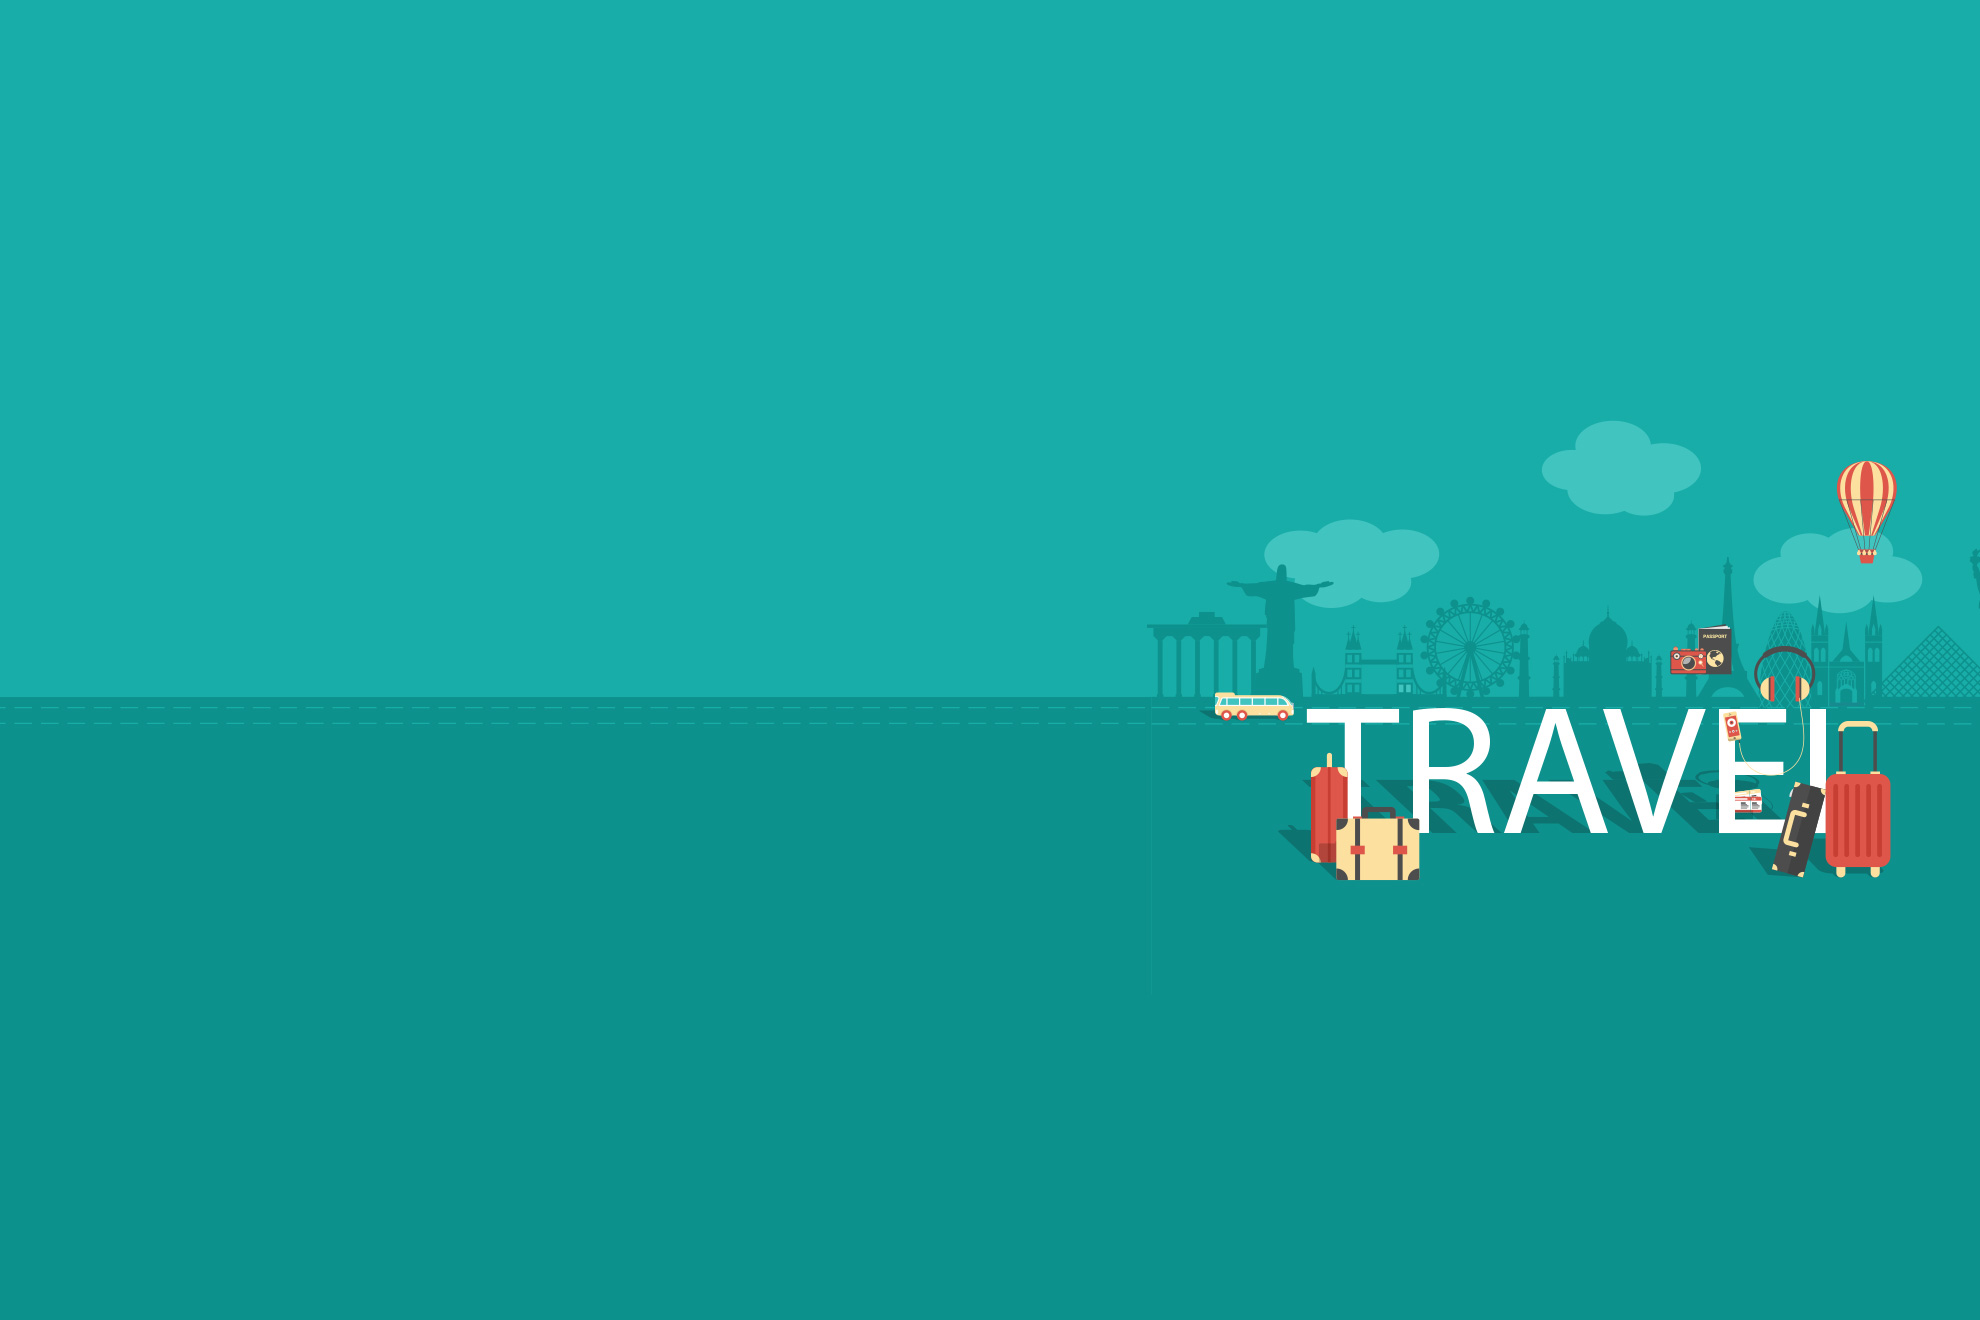 Help desk software for travel sector